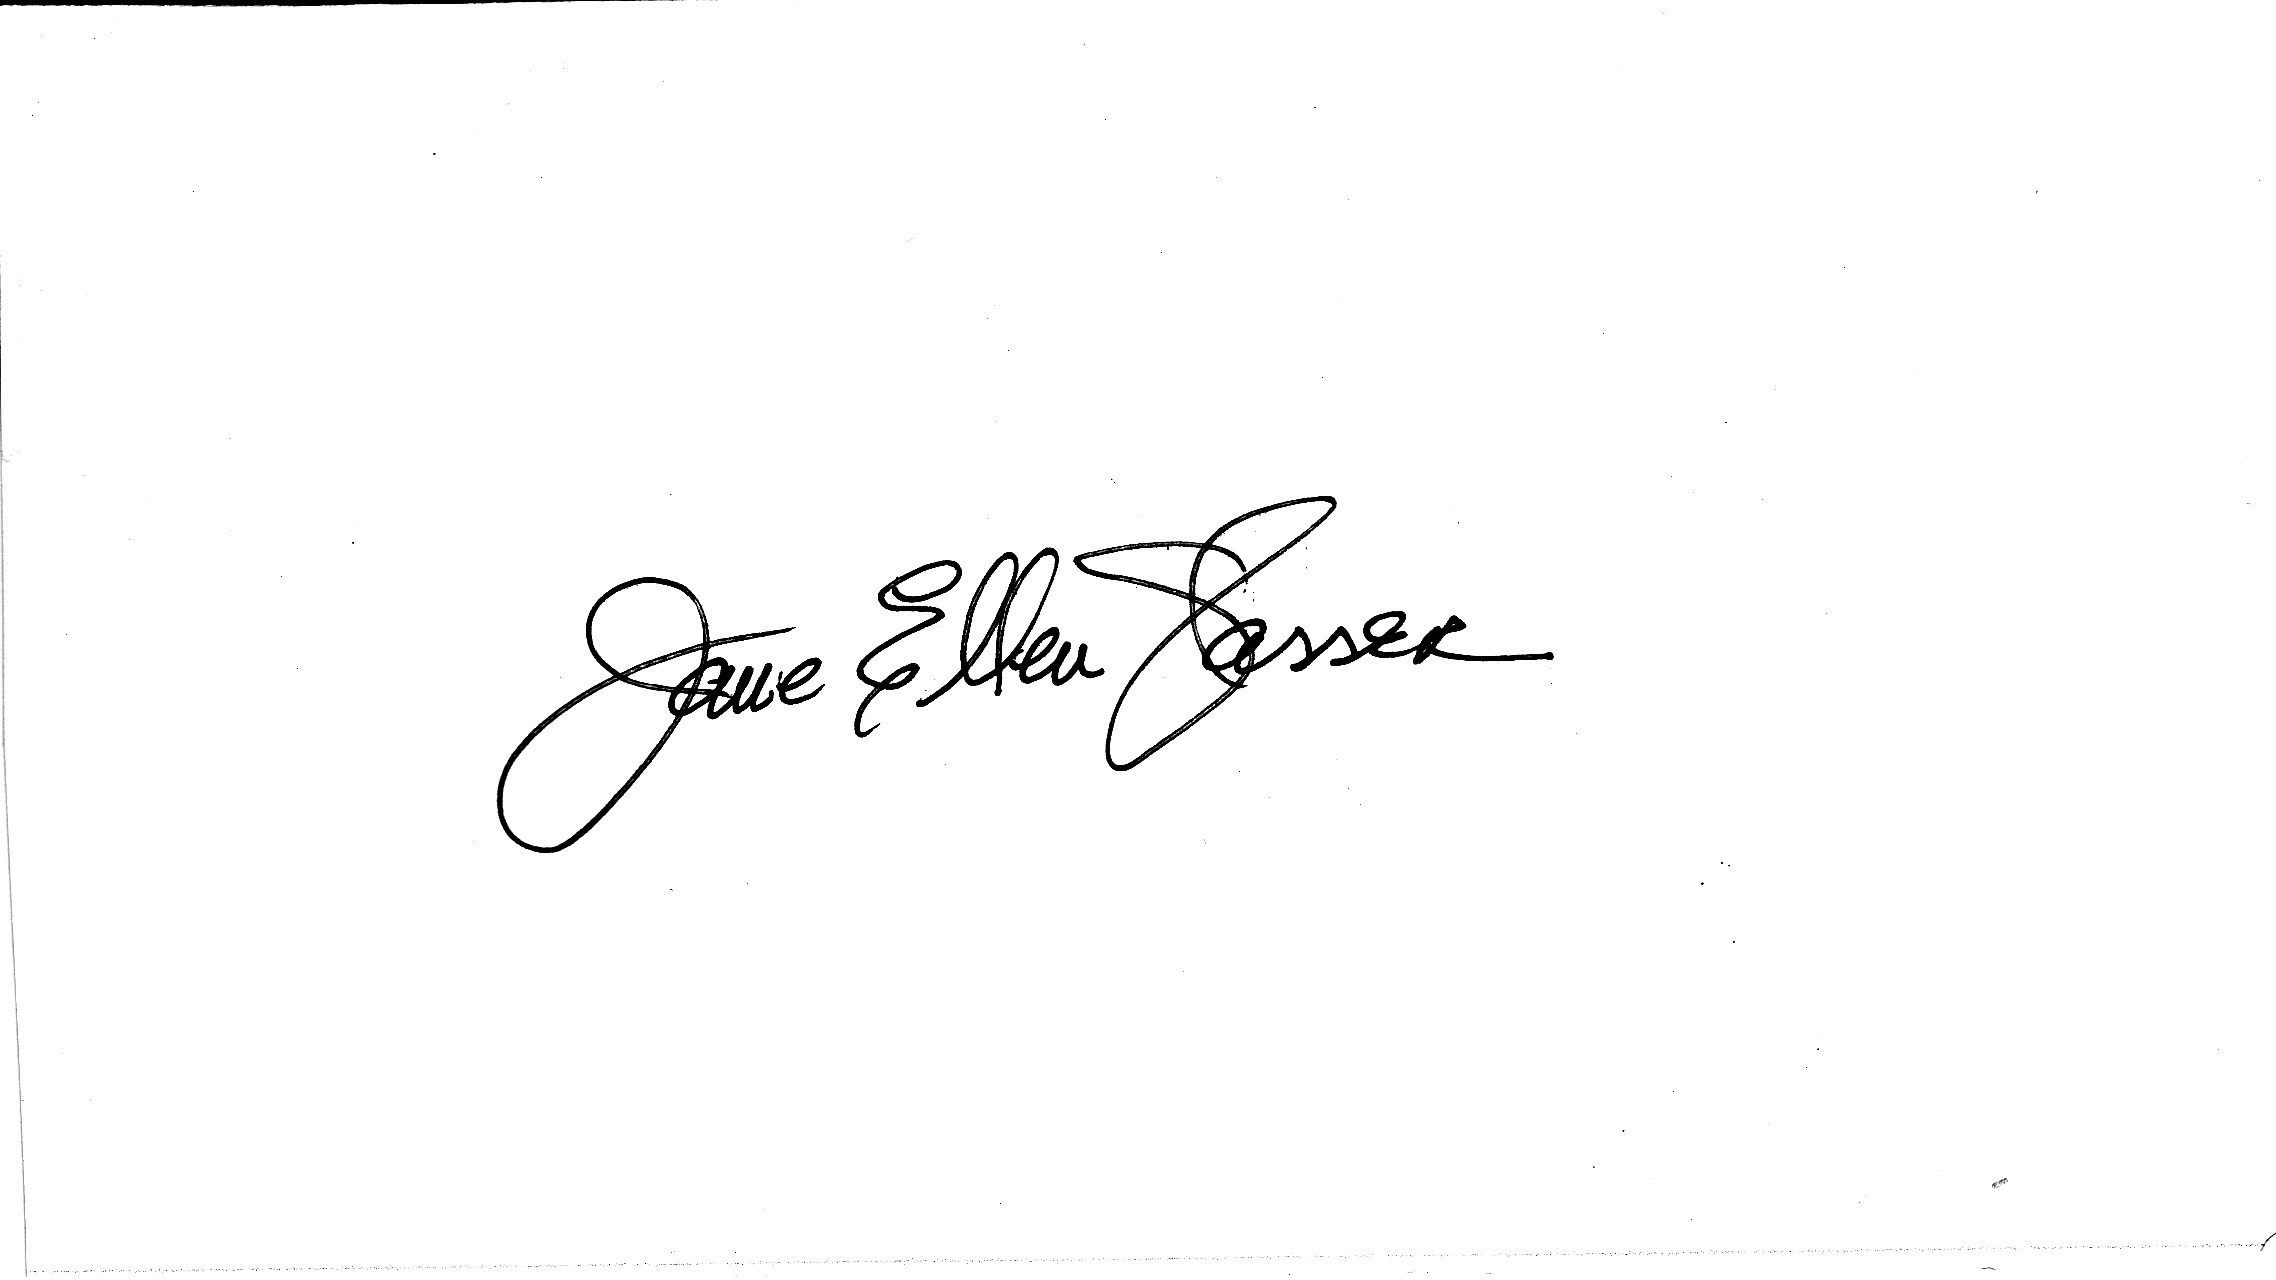 Jane Glasser Signature